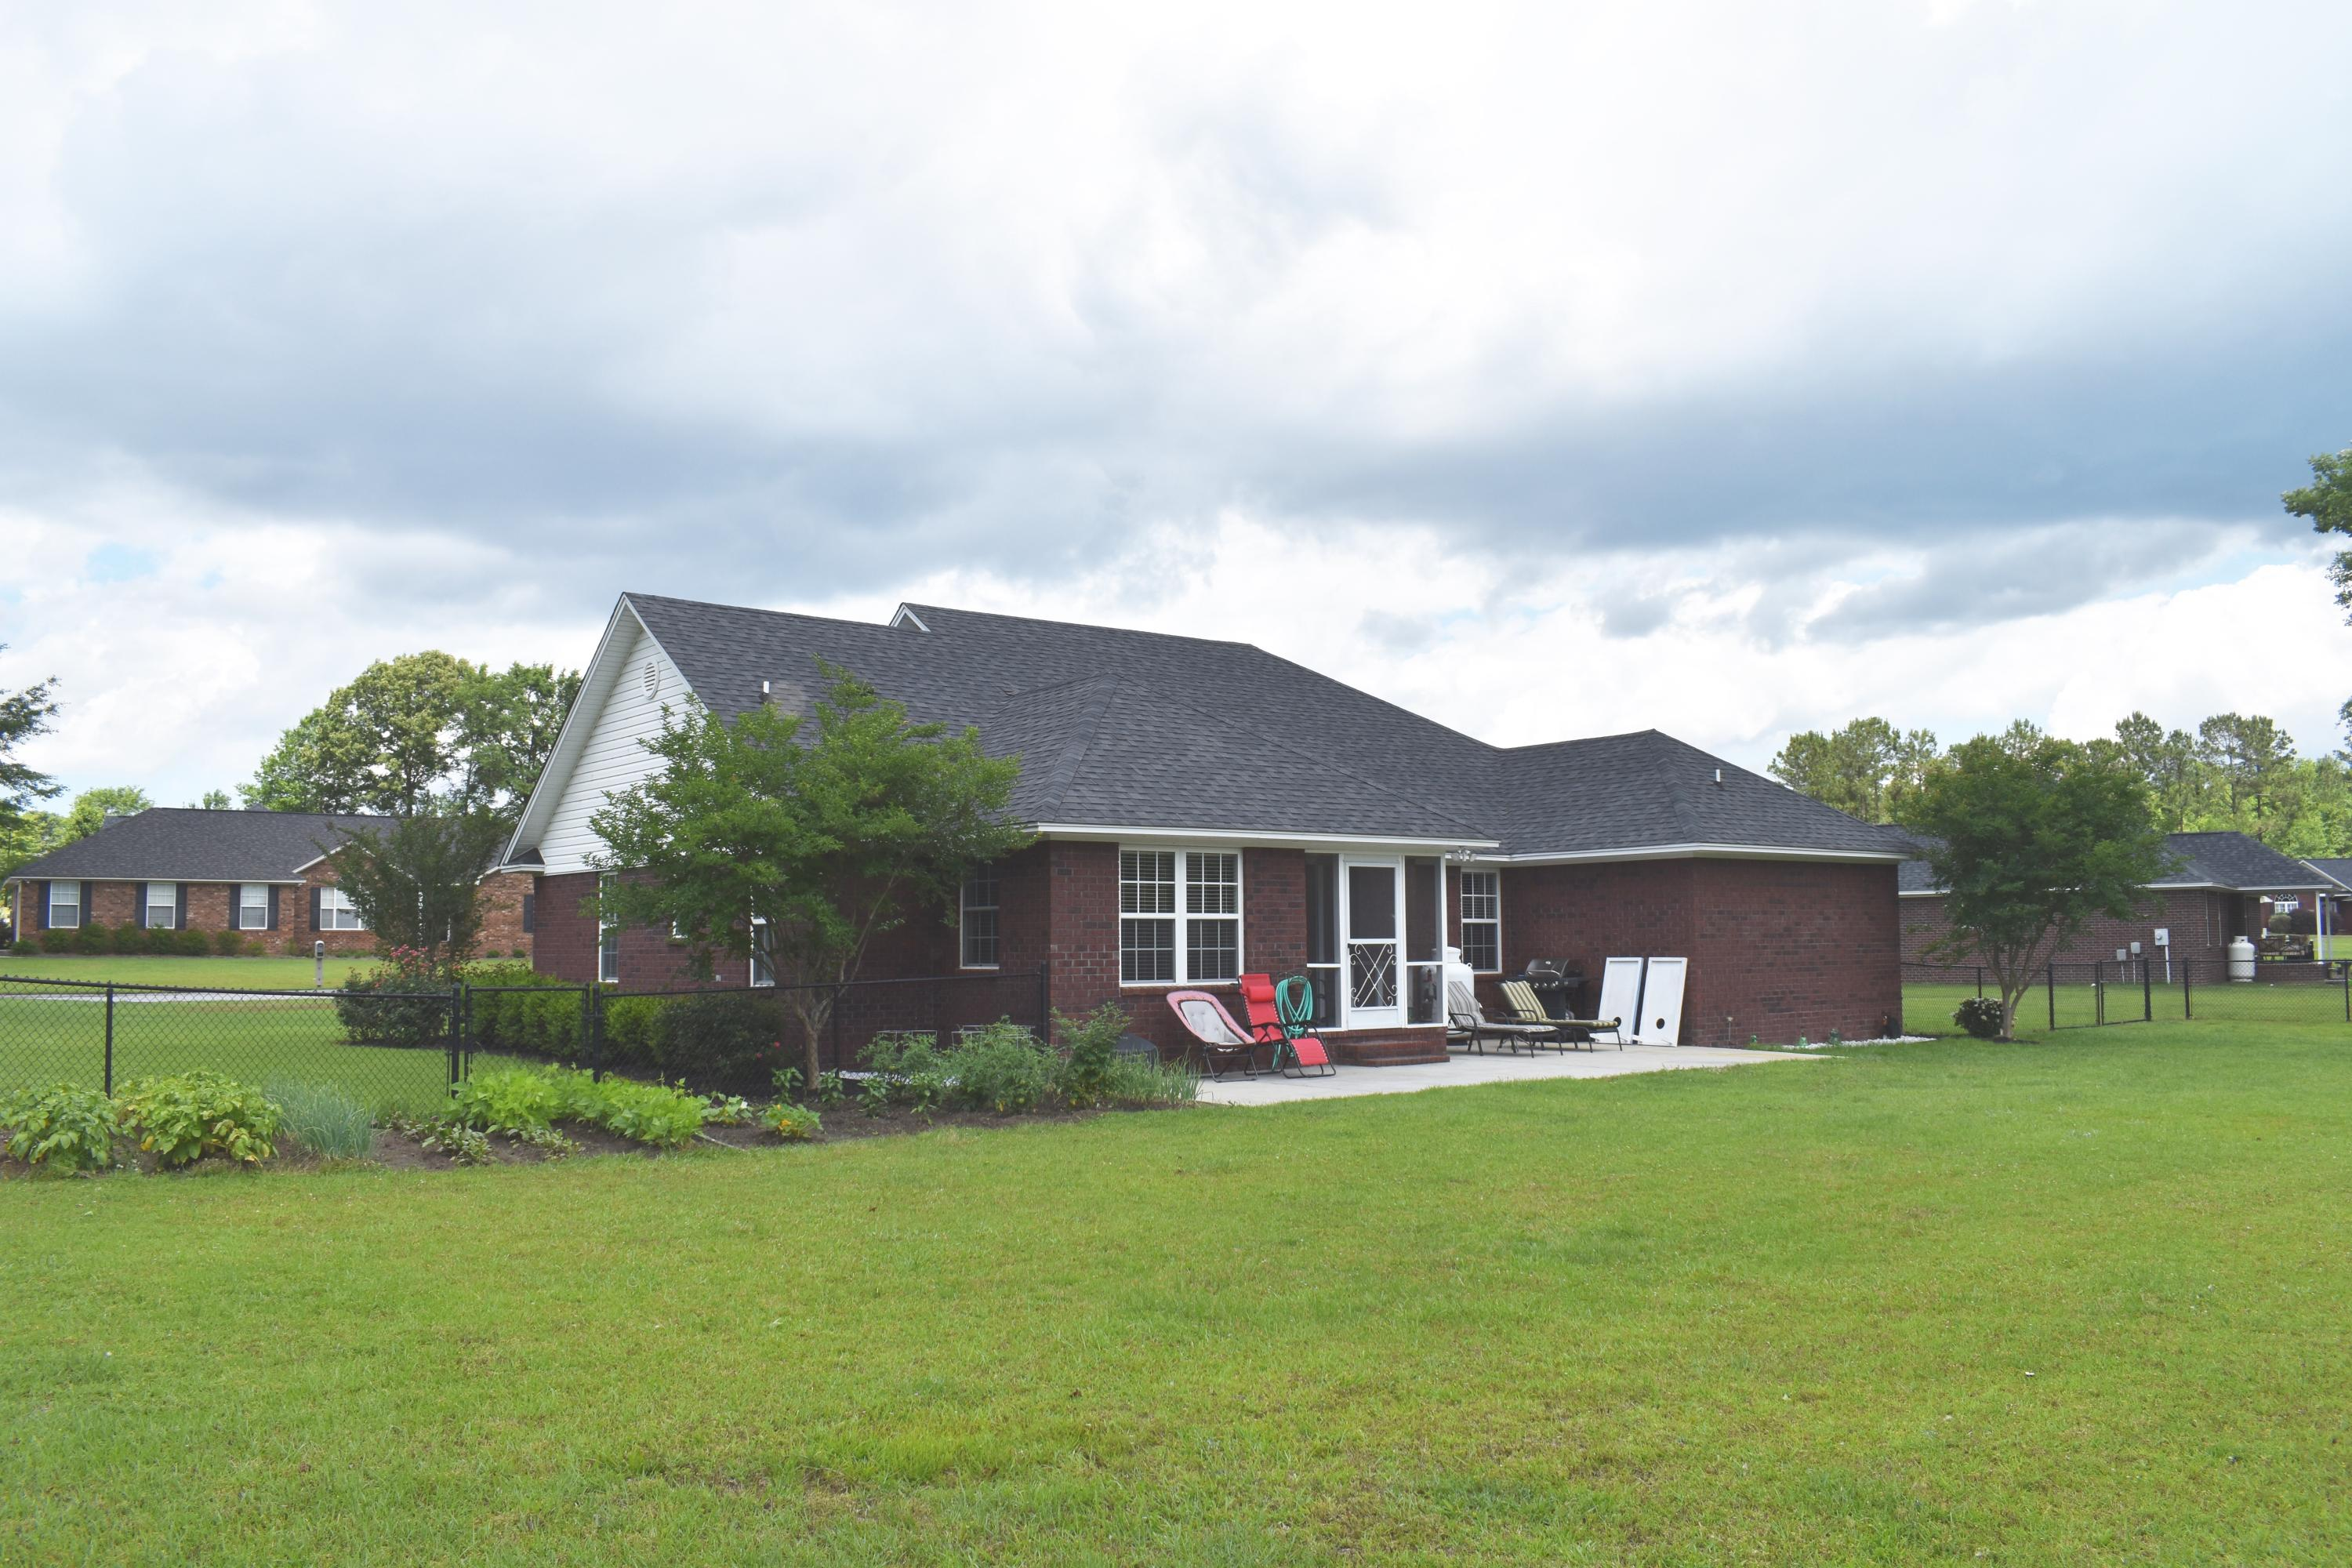 Pine Knoll Homes For Sale - 1444 Loblolly, Manning, SC - 32